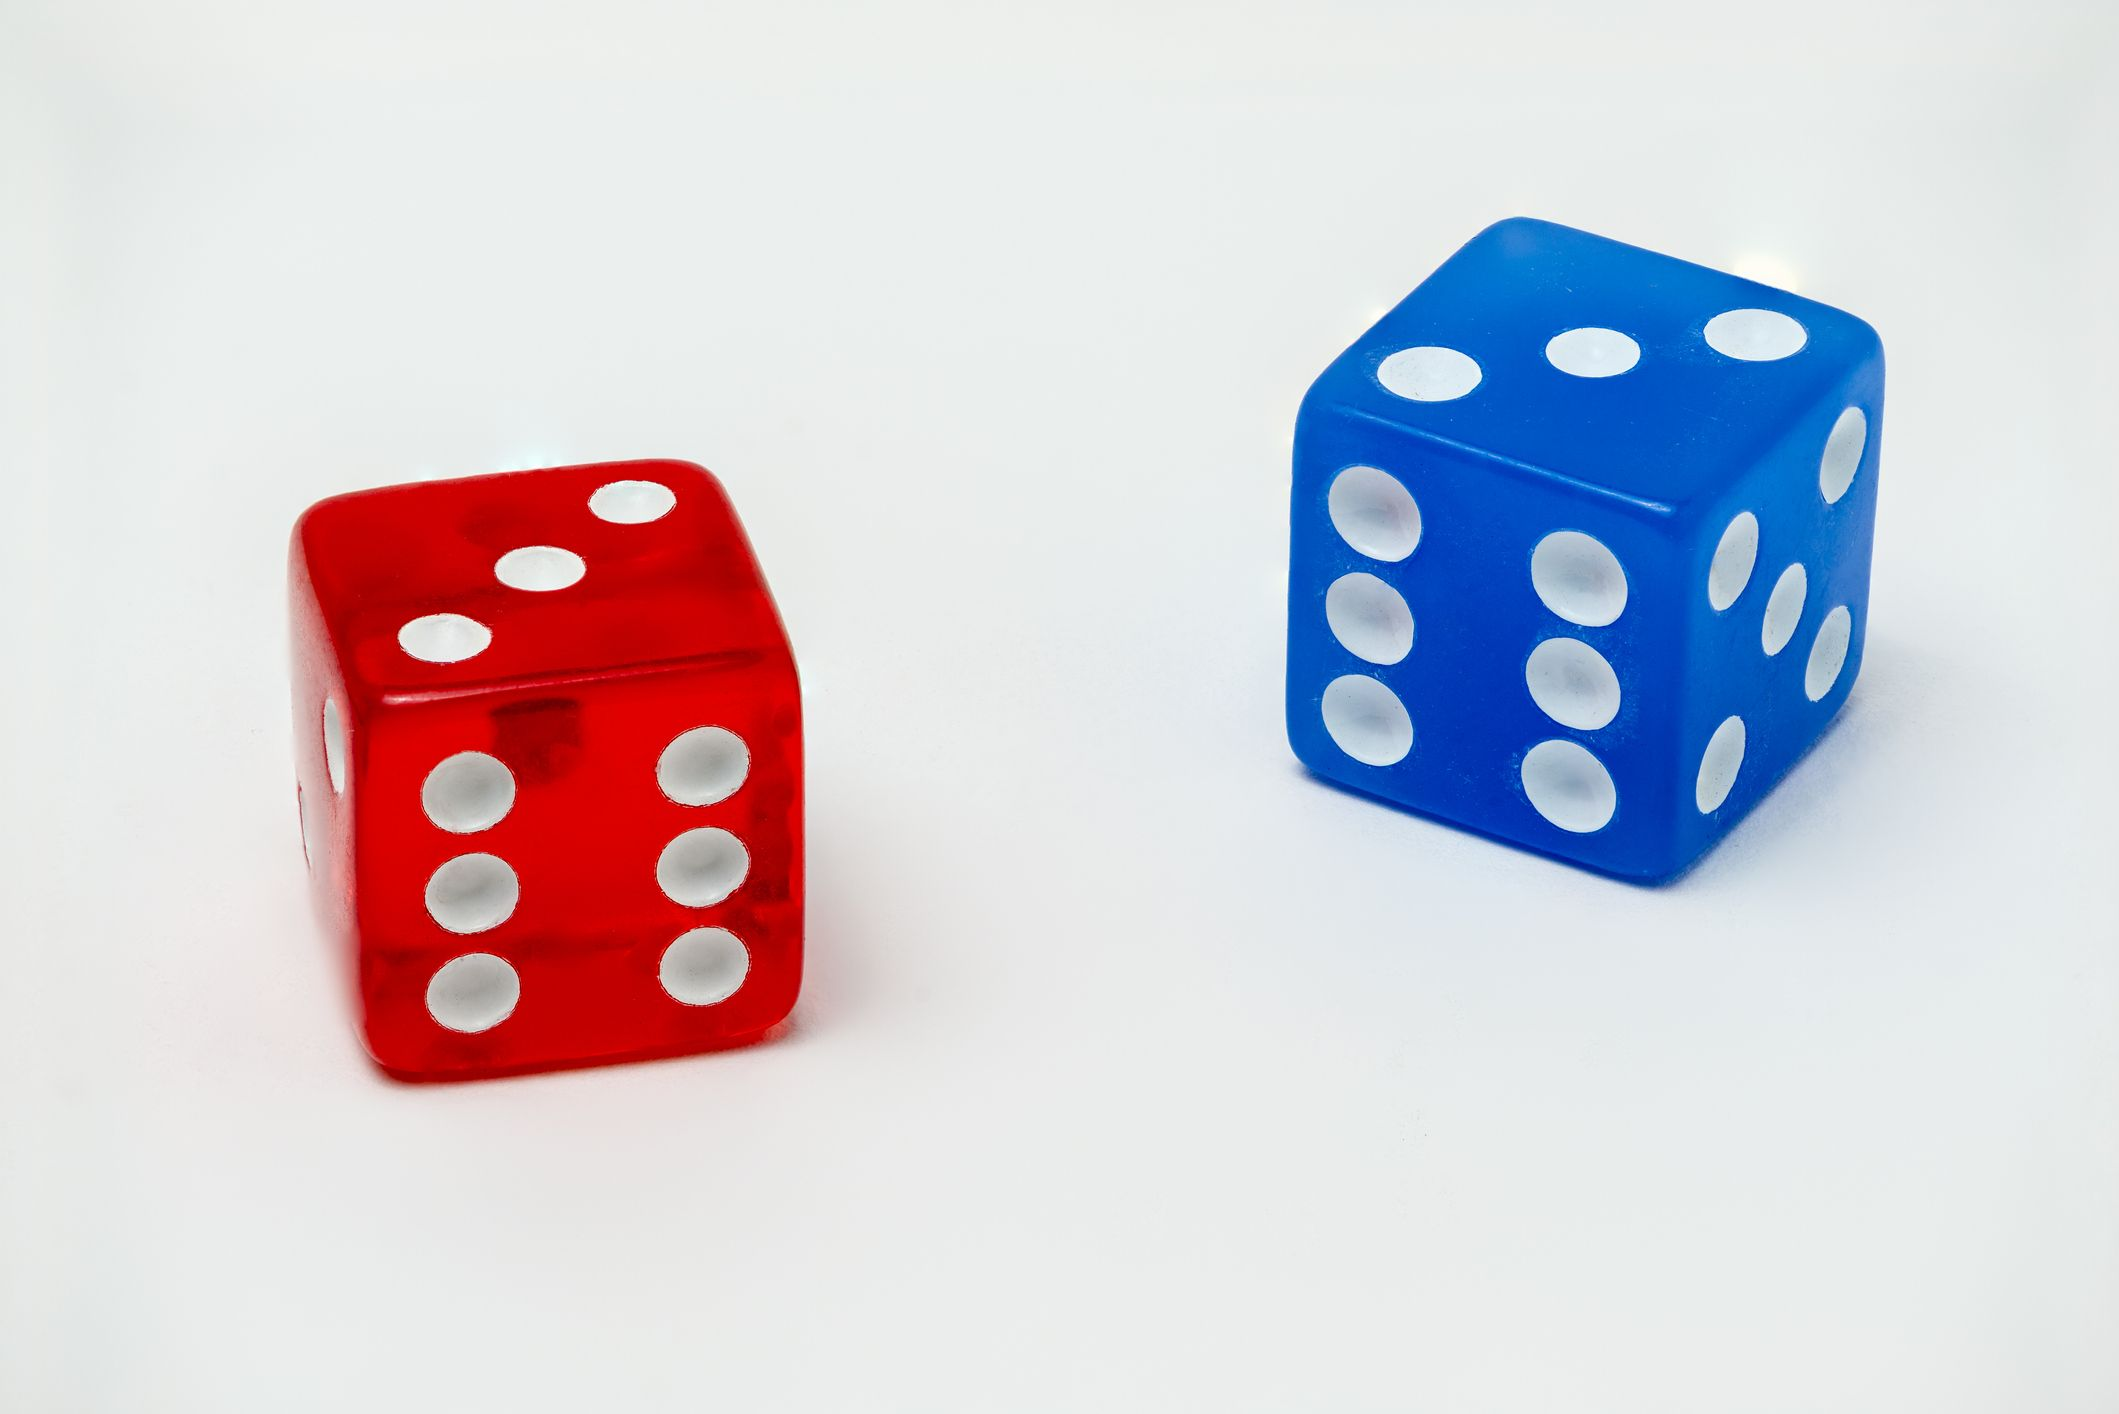 How to Solve This Tricky Dice Brainteaser Amazon Uses in Job Interviews